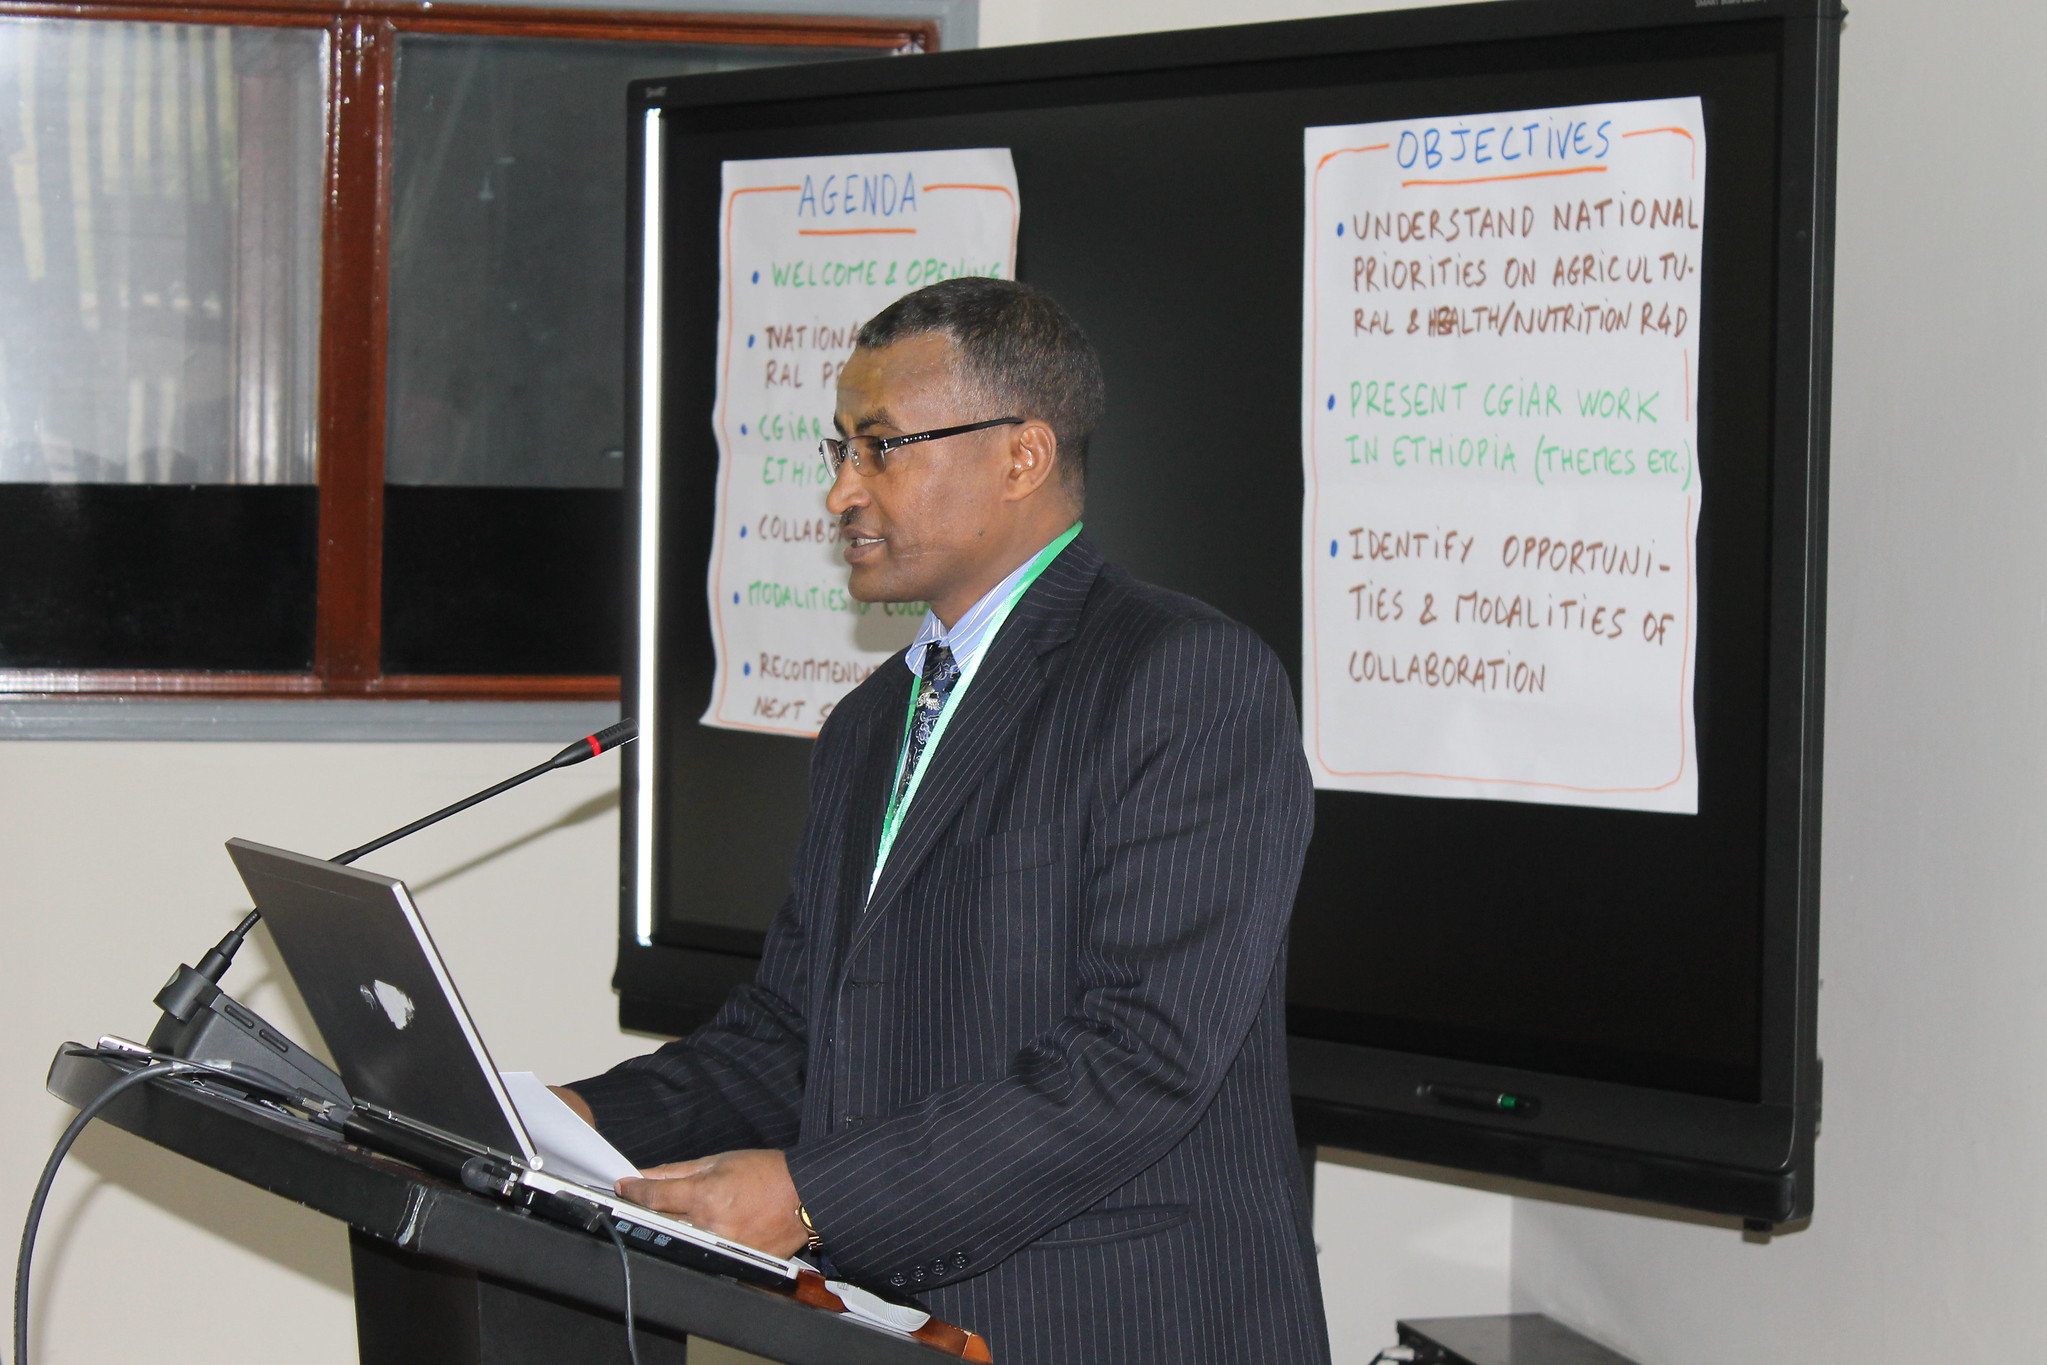 Dr Gebregziabher Gebreyohannes, Ethiopia State Minister of Livestock and Fishery for Livestock opens the consultation meeting